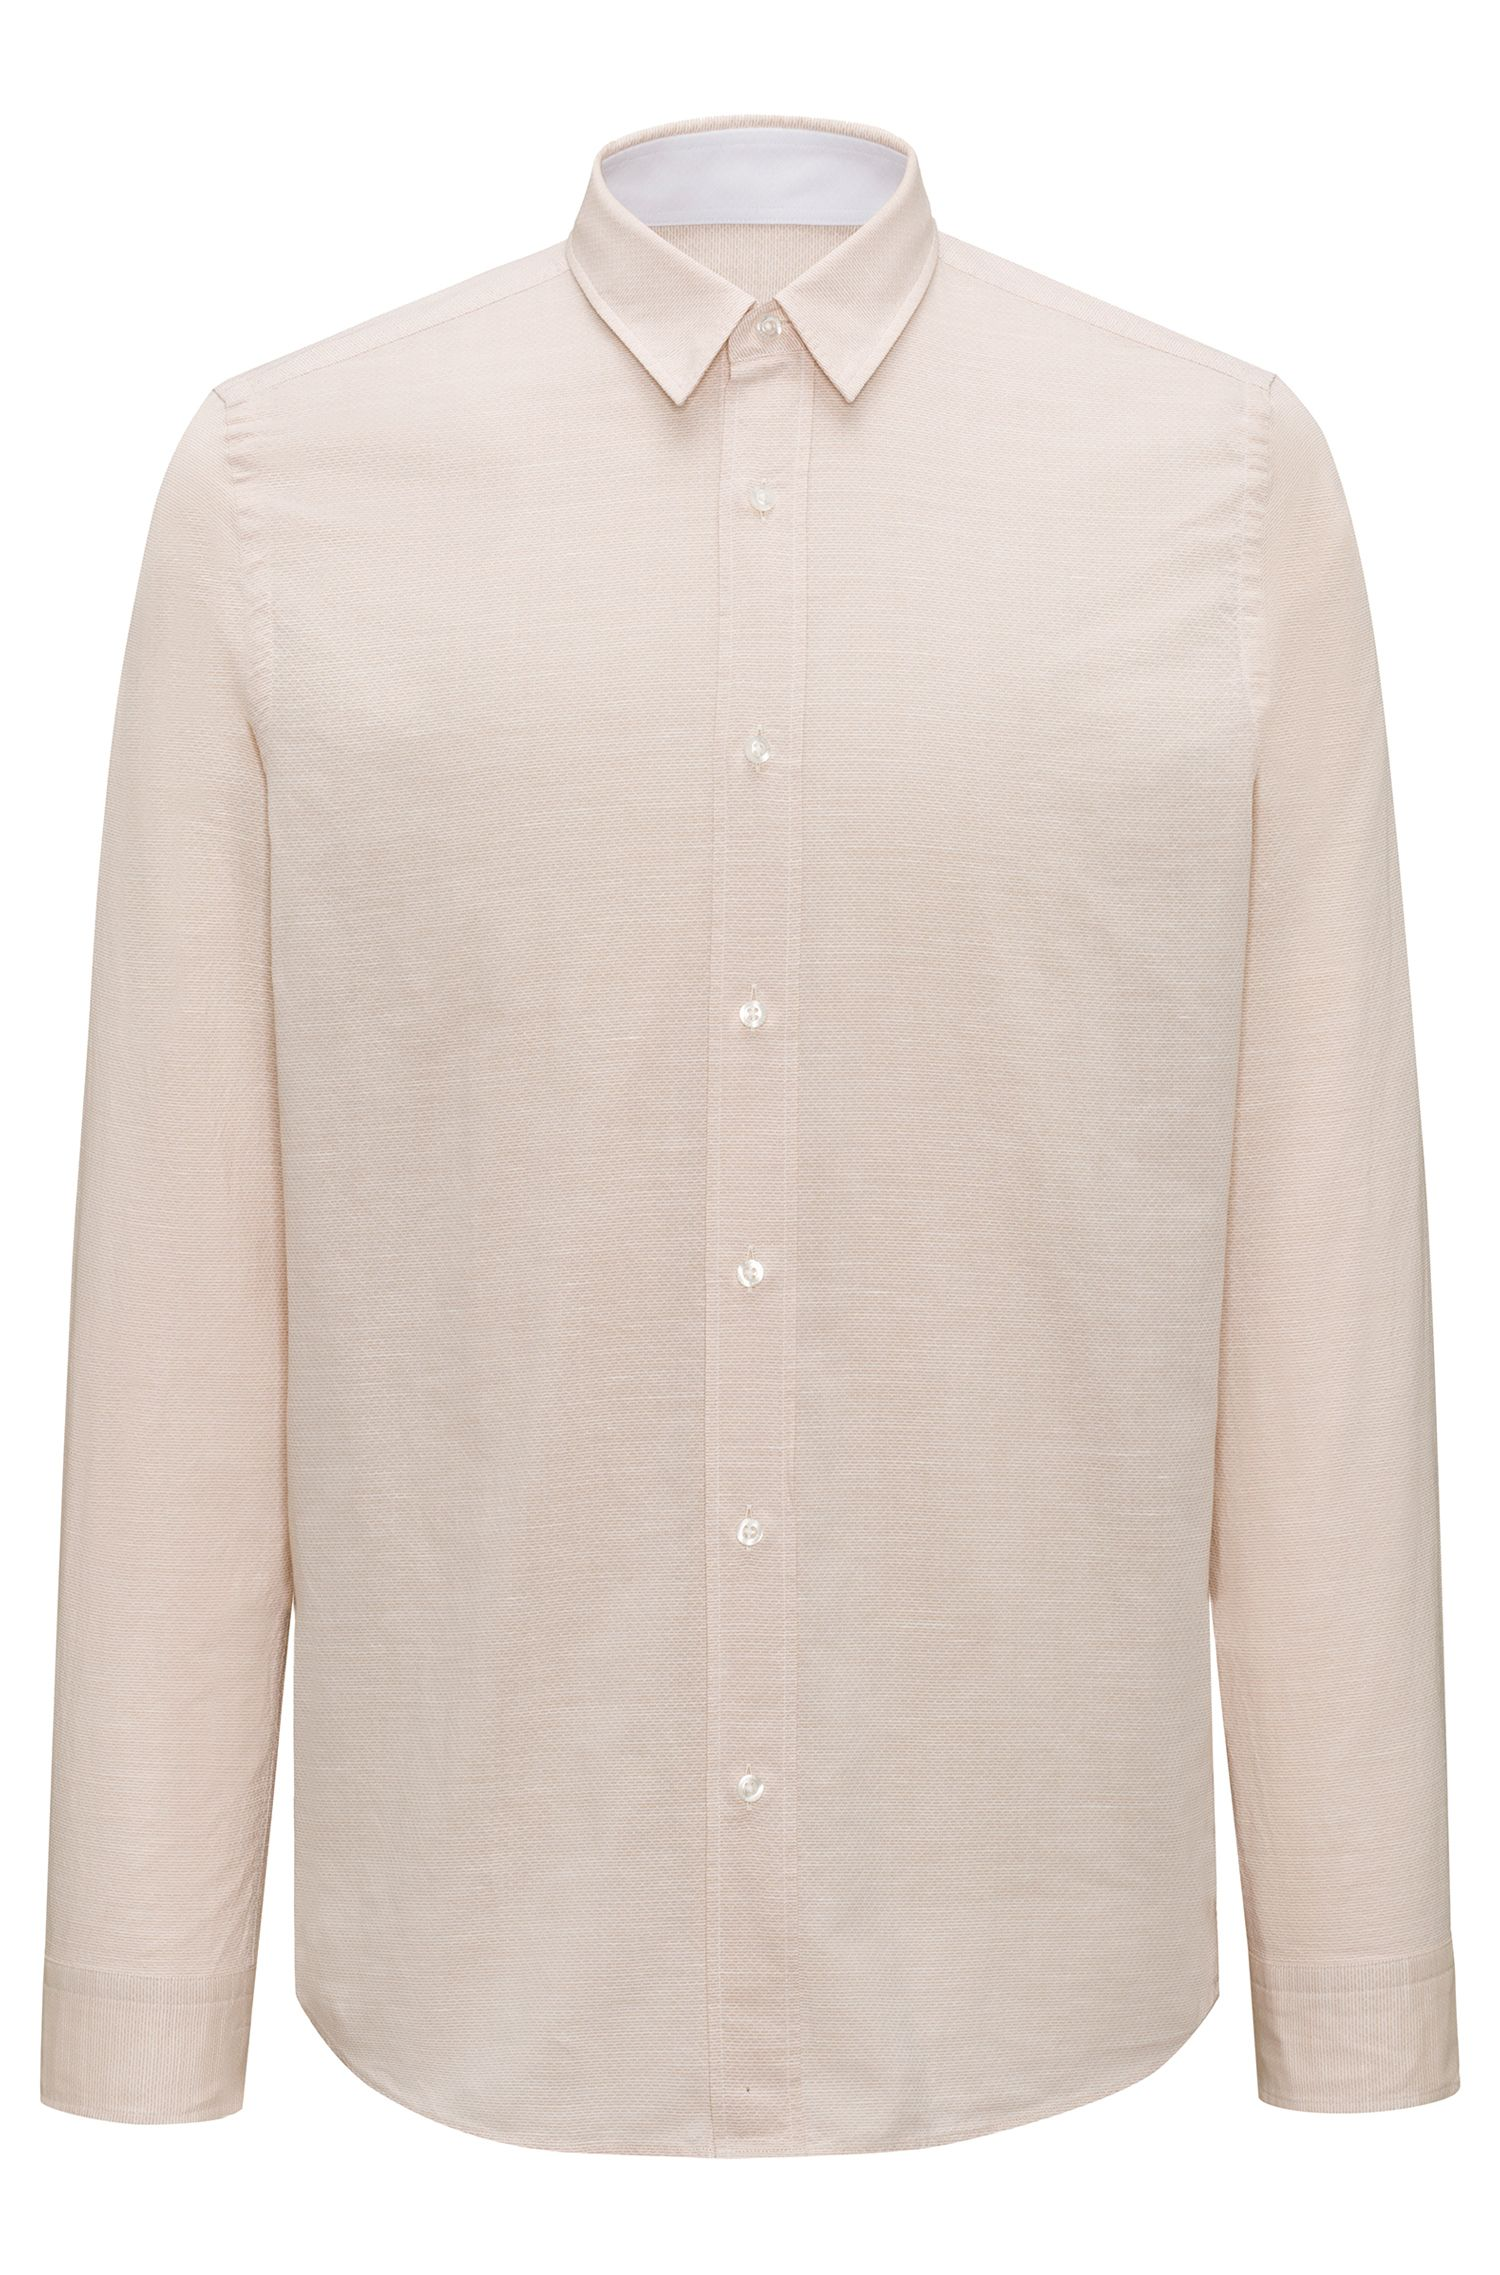 Relaxed-fit shirt in a cotton blend